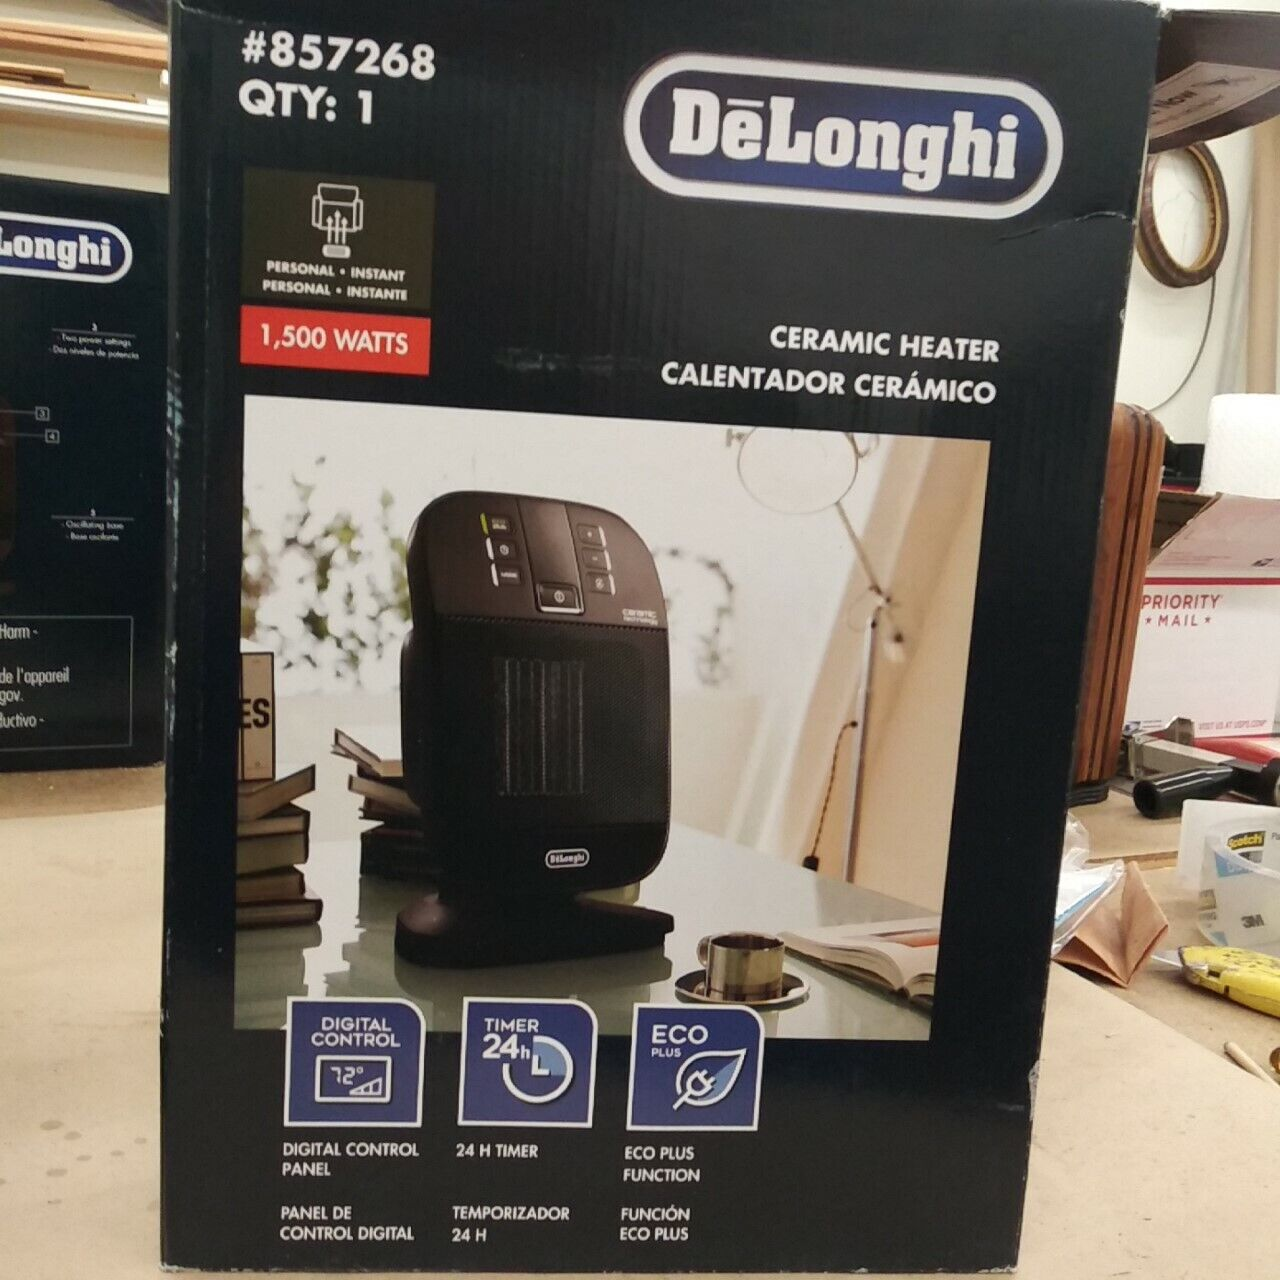 DeLonghi 5120 BTU Ceramic Compact Electric Space Heater with